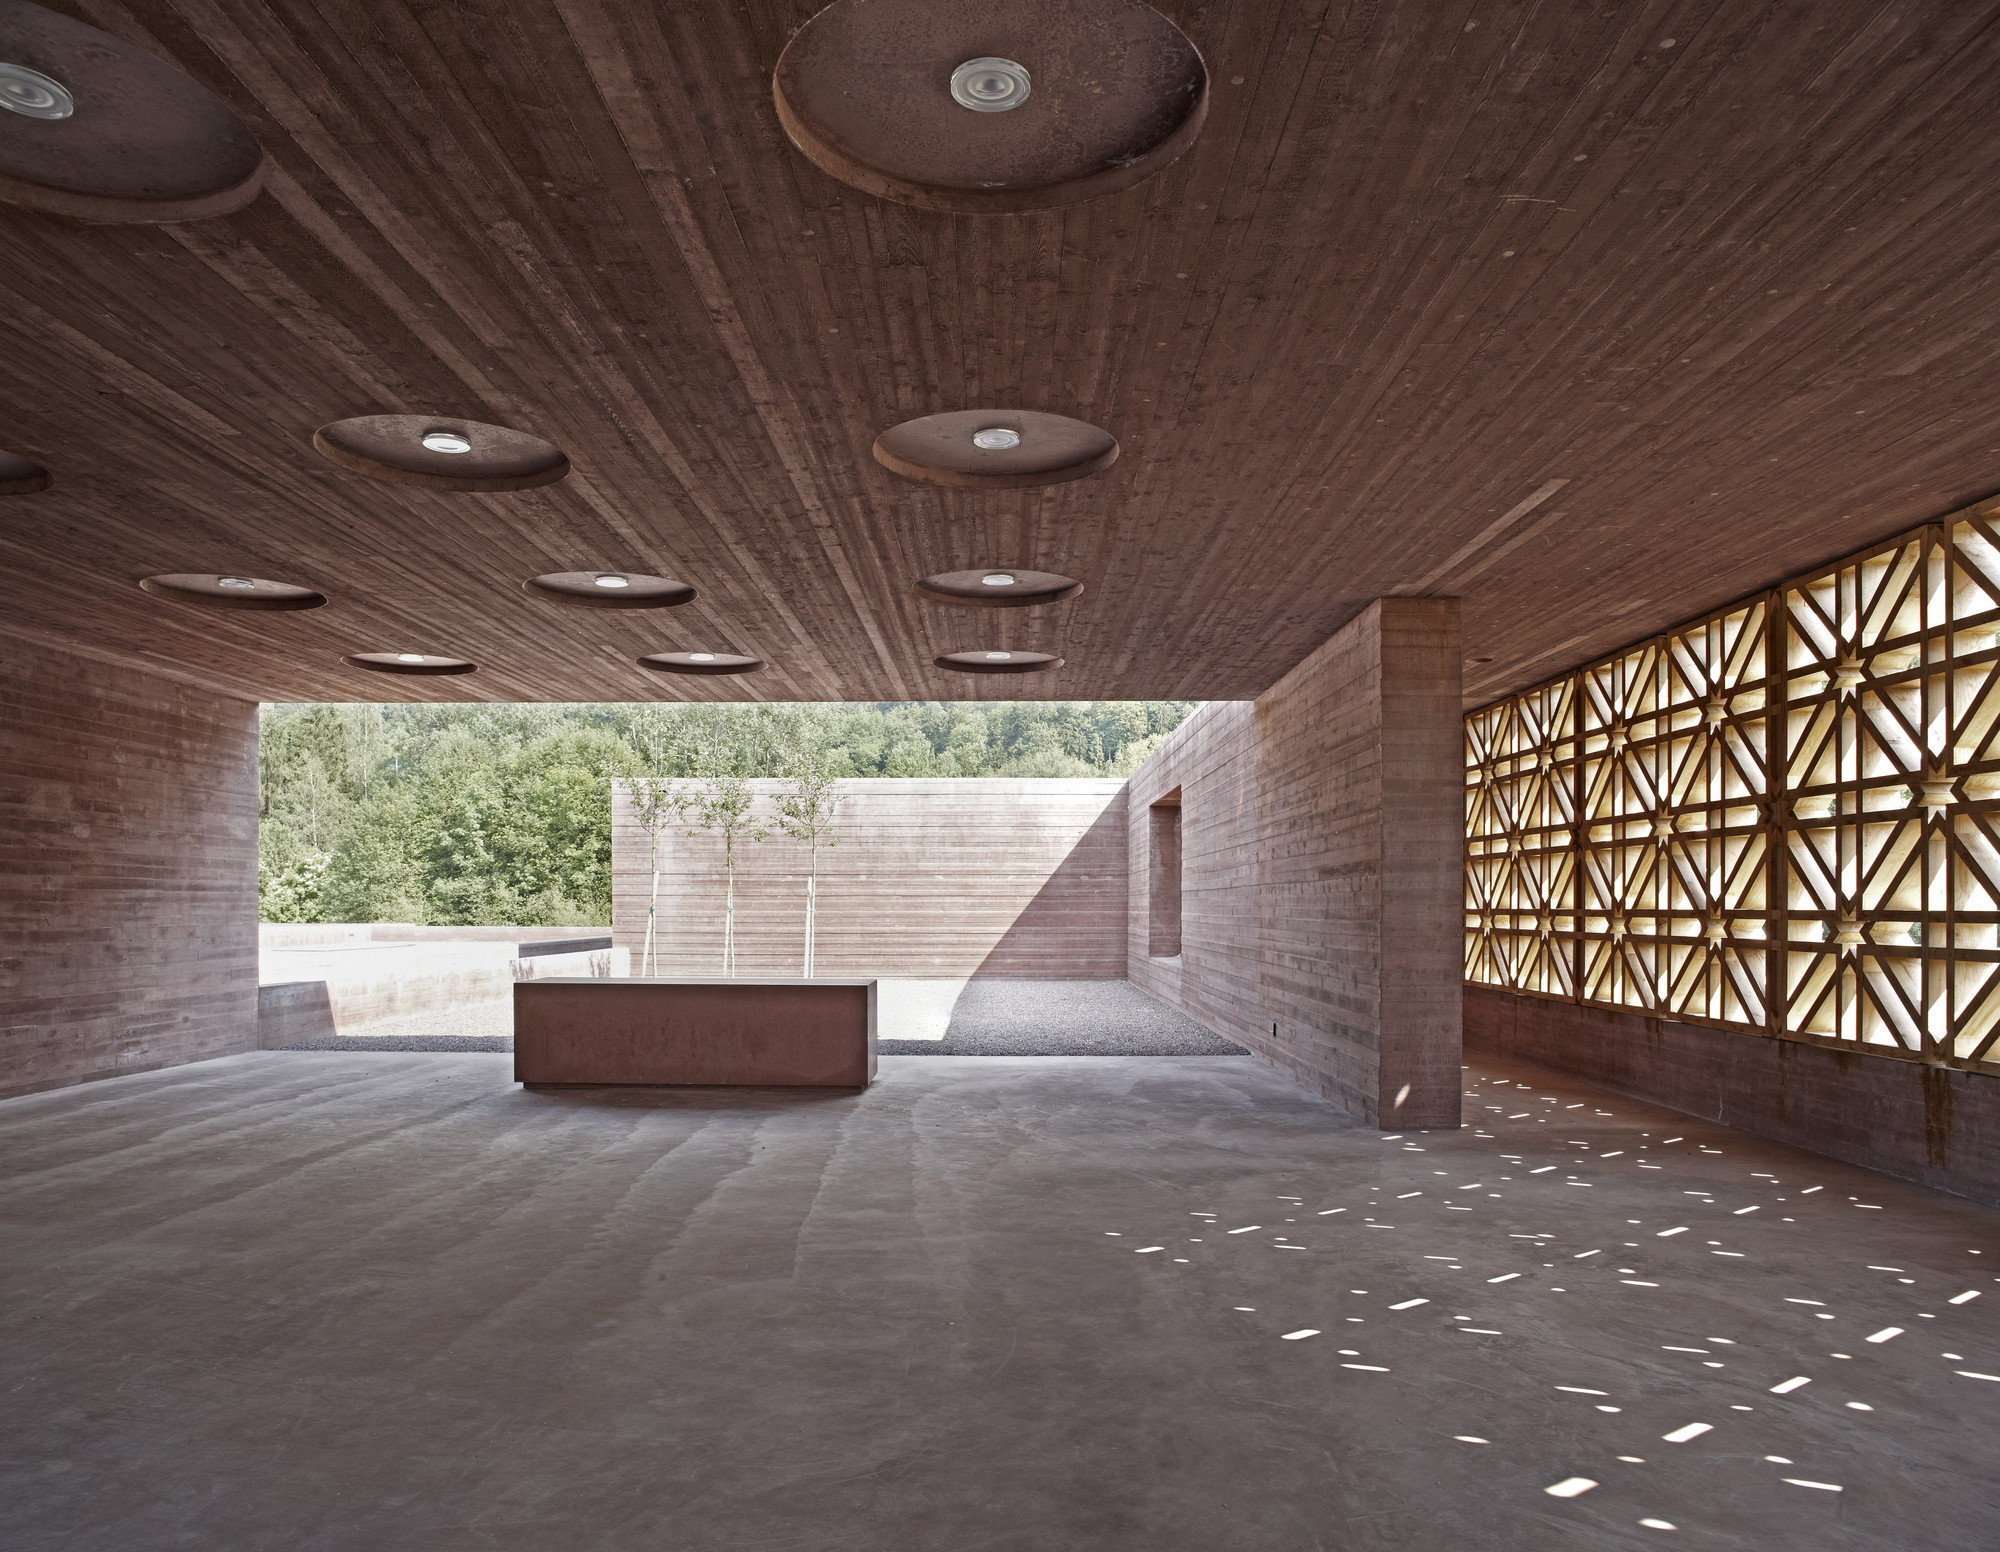 Five Projects Win Aga Khan Award for Architecture, Islamic Cemetery, Altach, Austria / Bernado Bader Architects. Image © AKAA / Adolf Bereuter